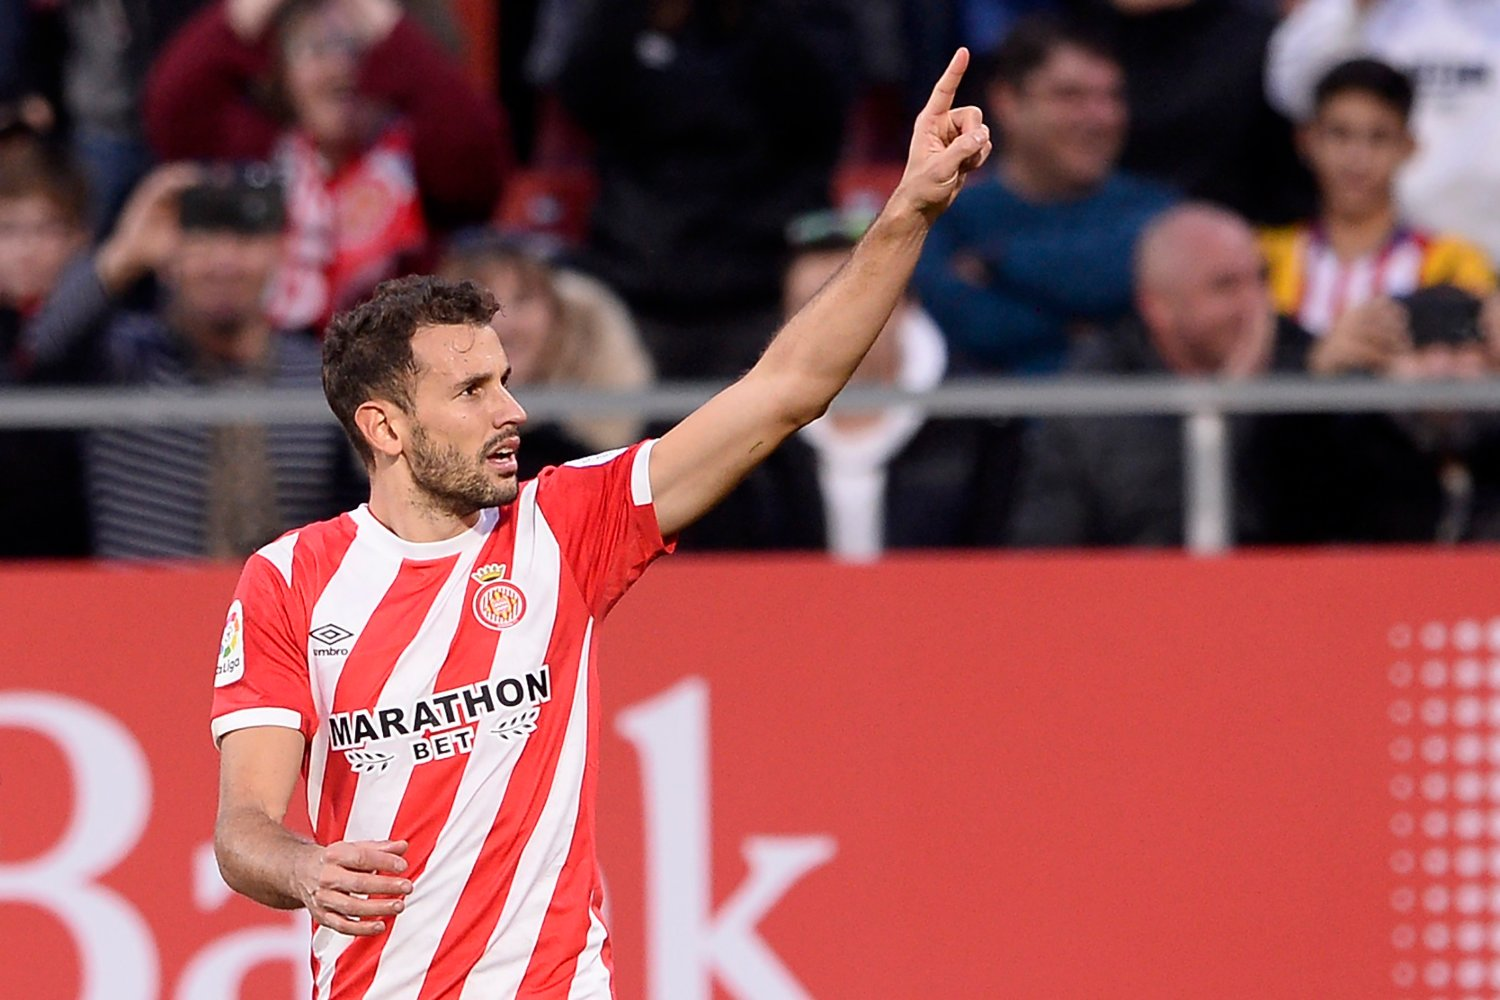 Girona's Uruguayan forward Cristhian Stuani celebrates after scoring a penalty during the Spanish league football match between Girona and Club Atletico de Madrid at the Montilivi stadium in Girona on December 2, 2018.